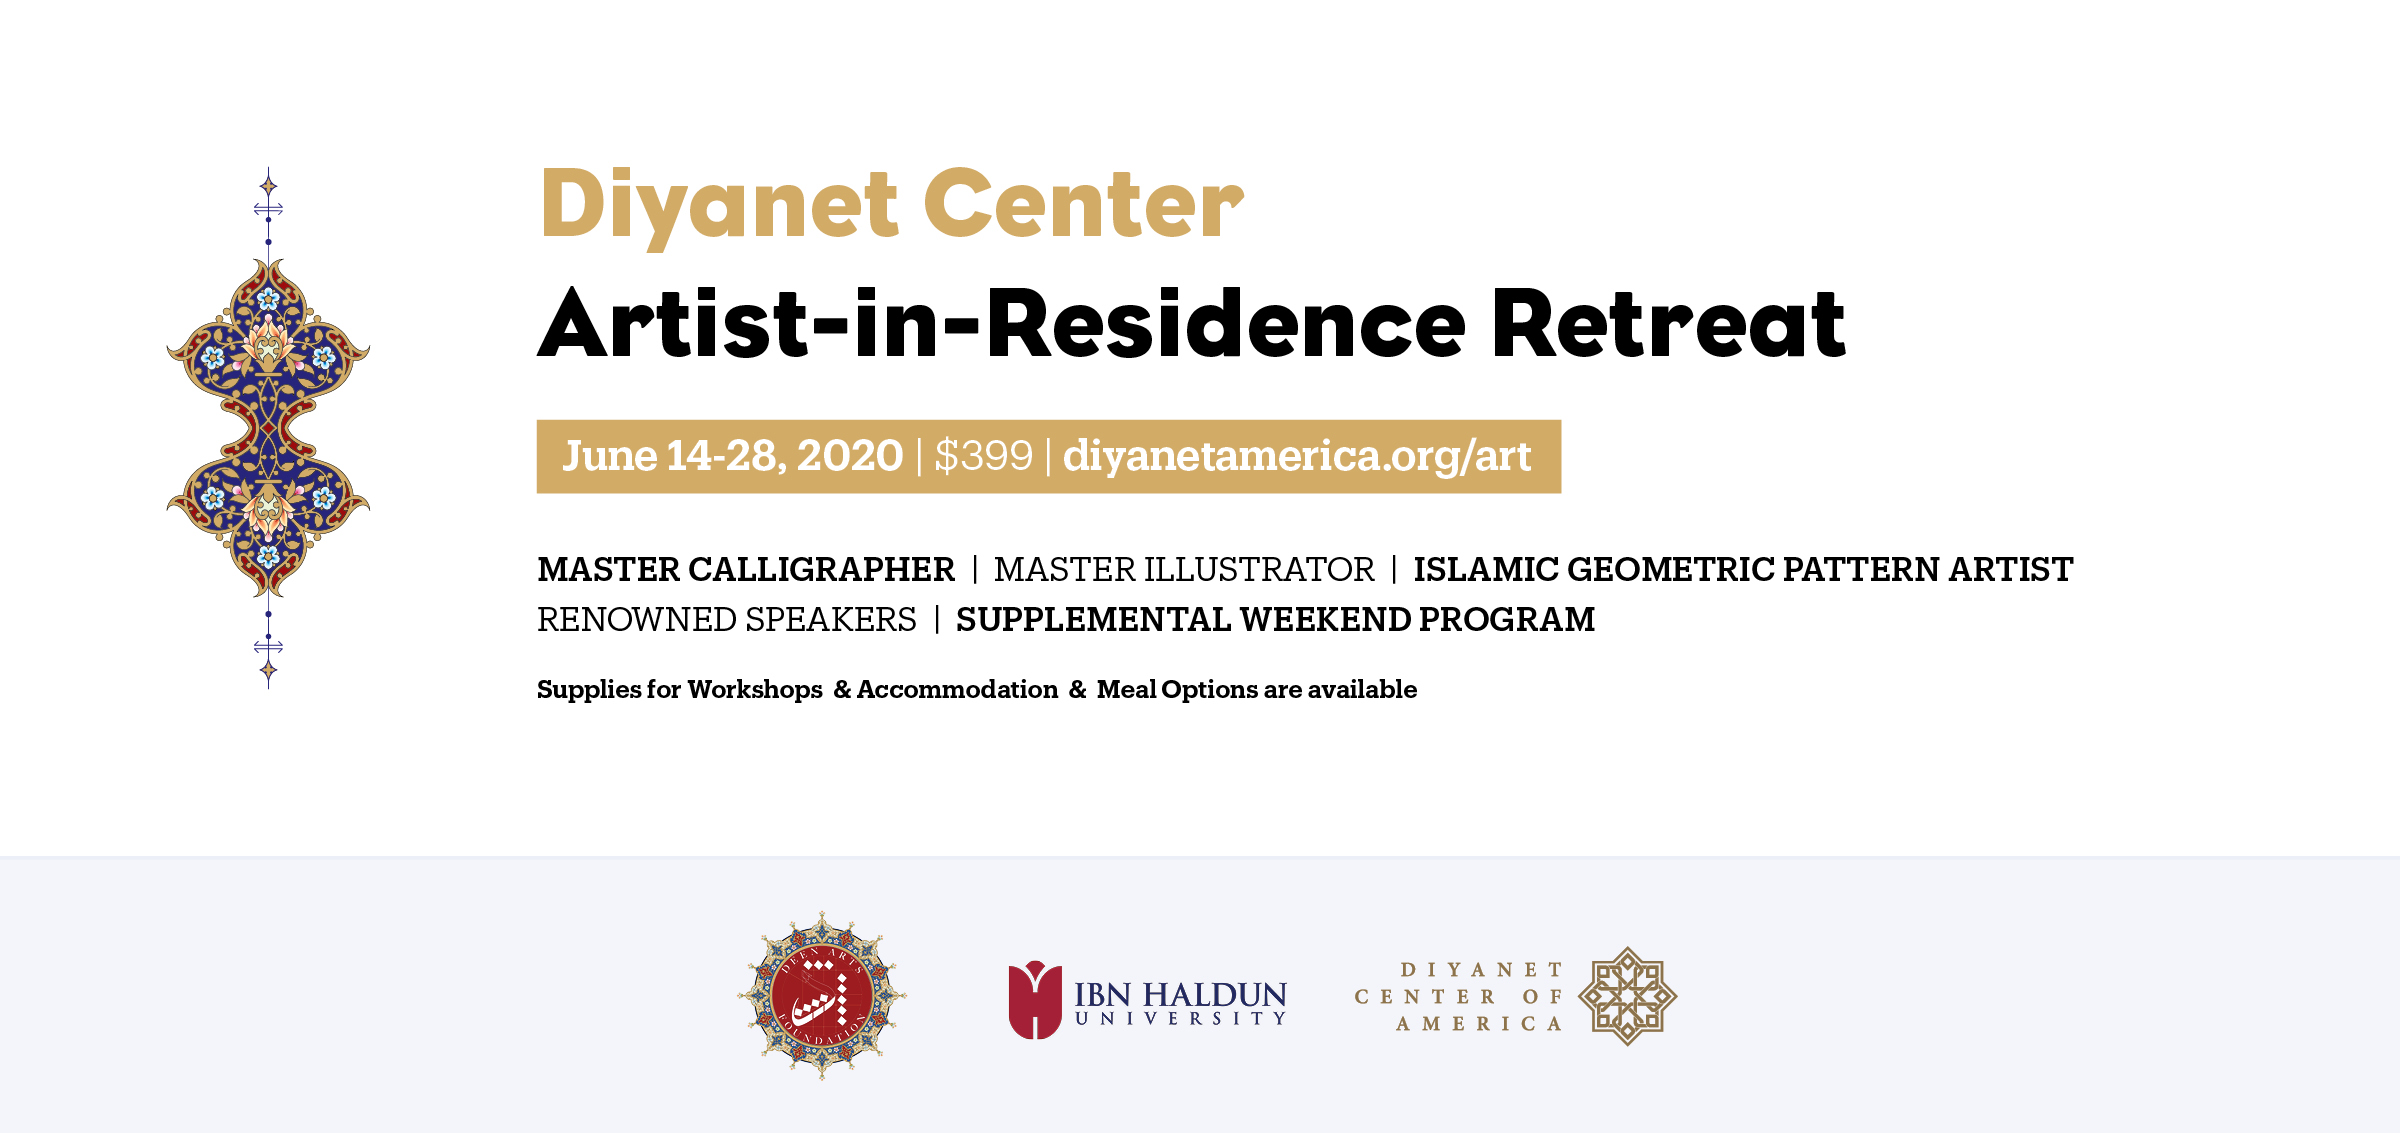 Artist-in-Residence Retreat